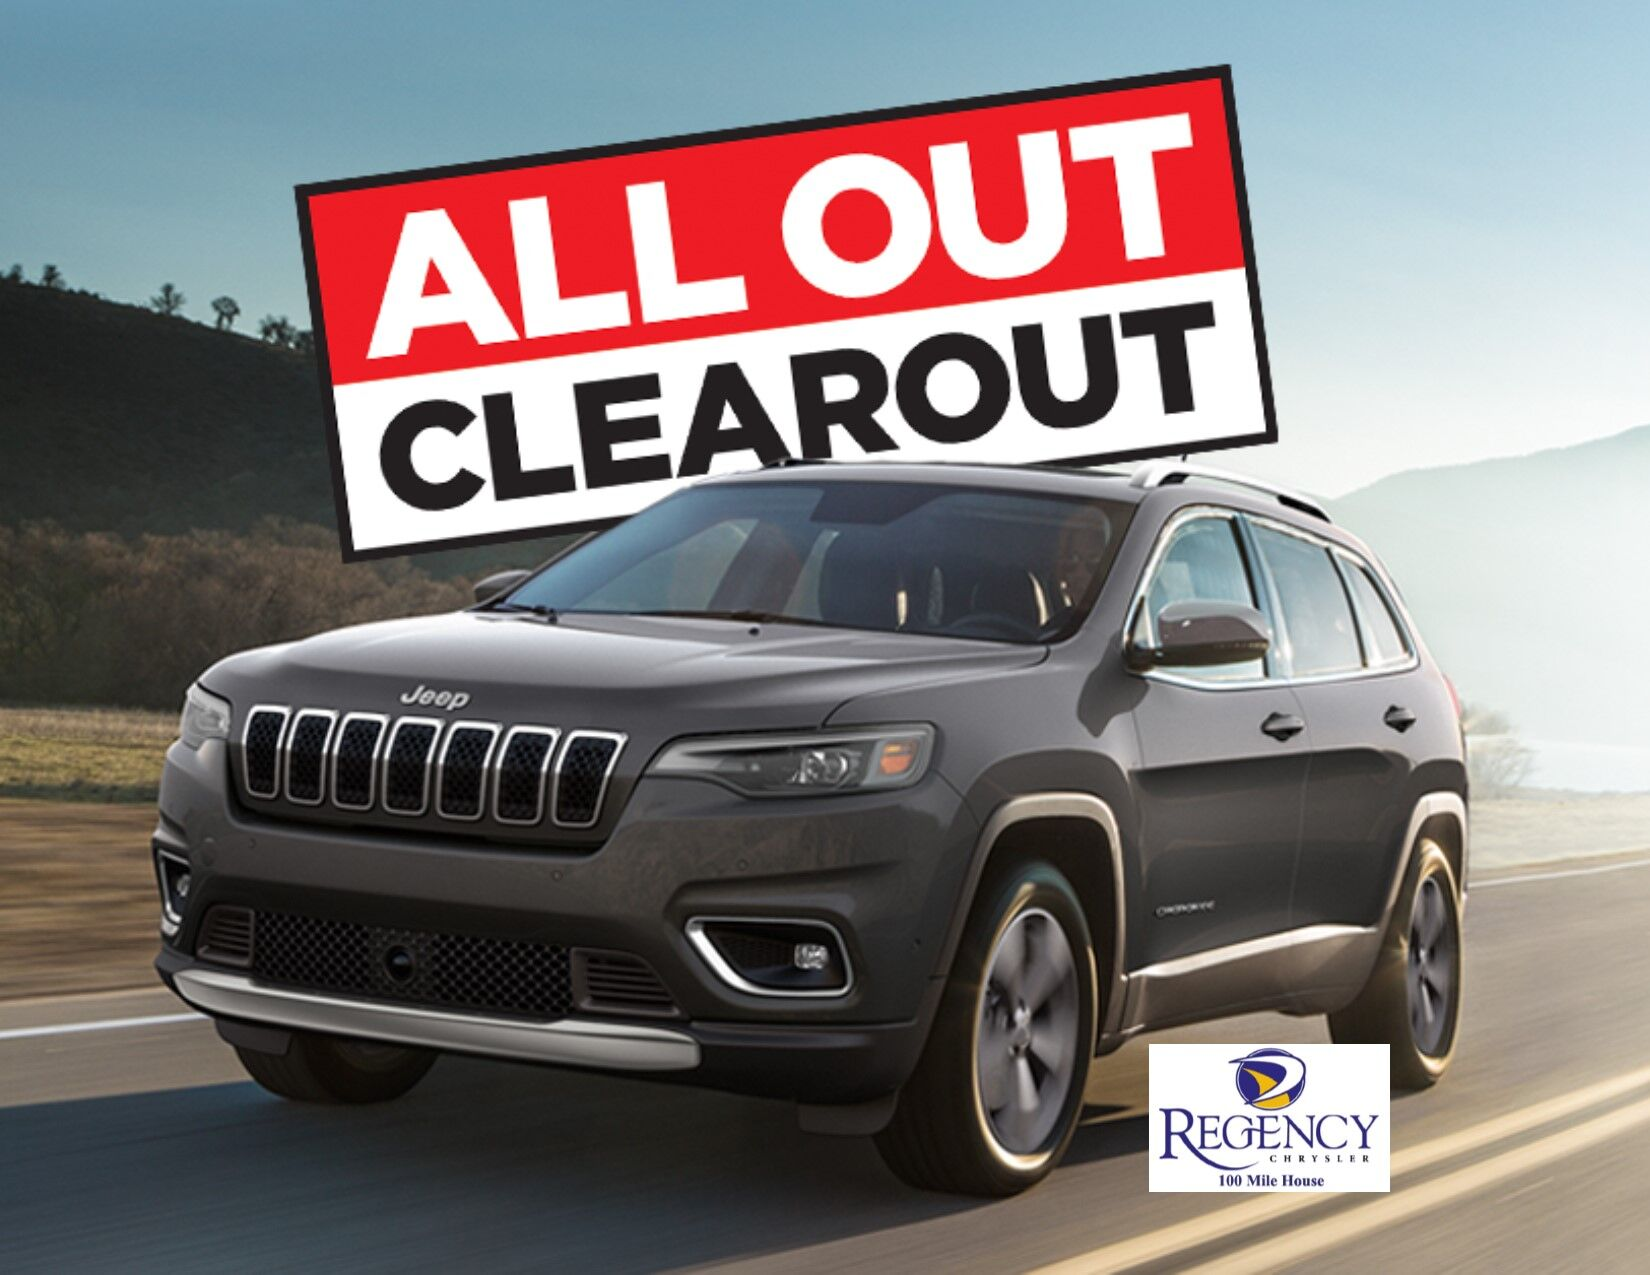 The All Out Clearout Sales Event continues at Regency Chrysler 100 Mile House.